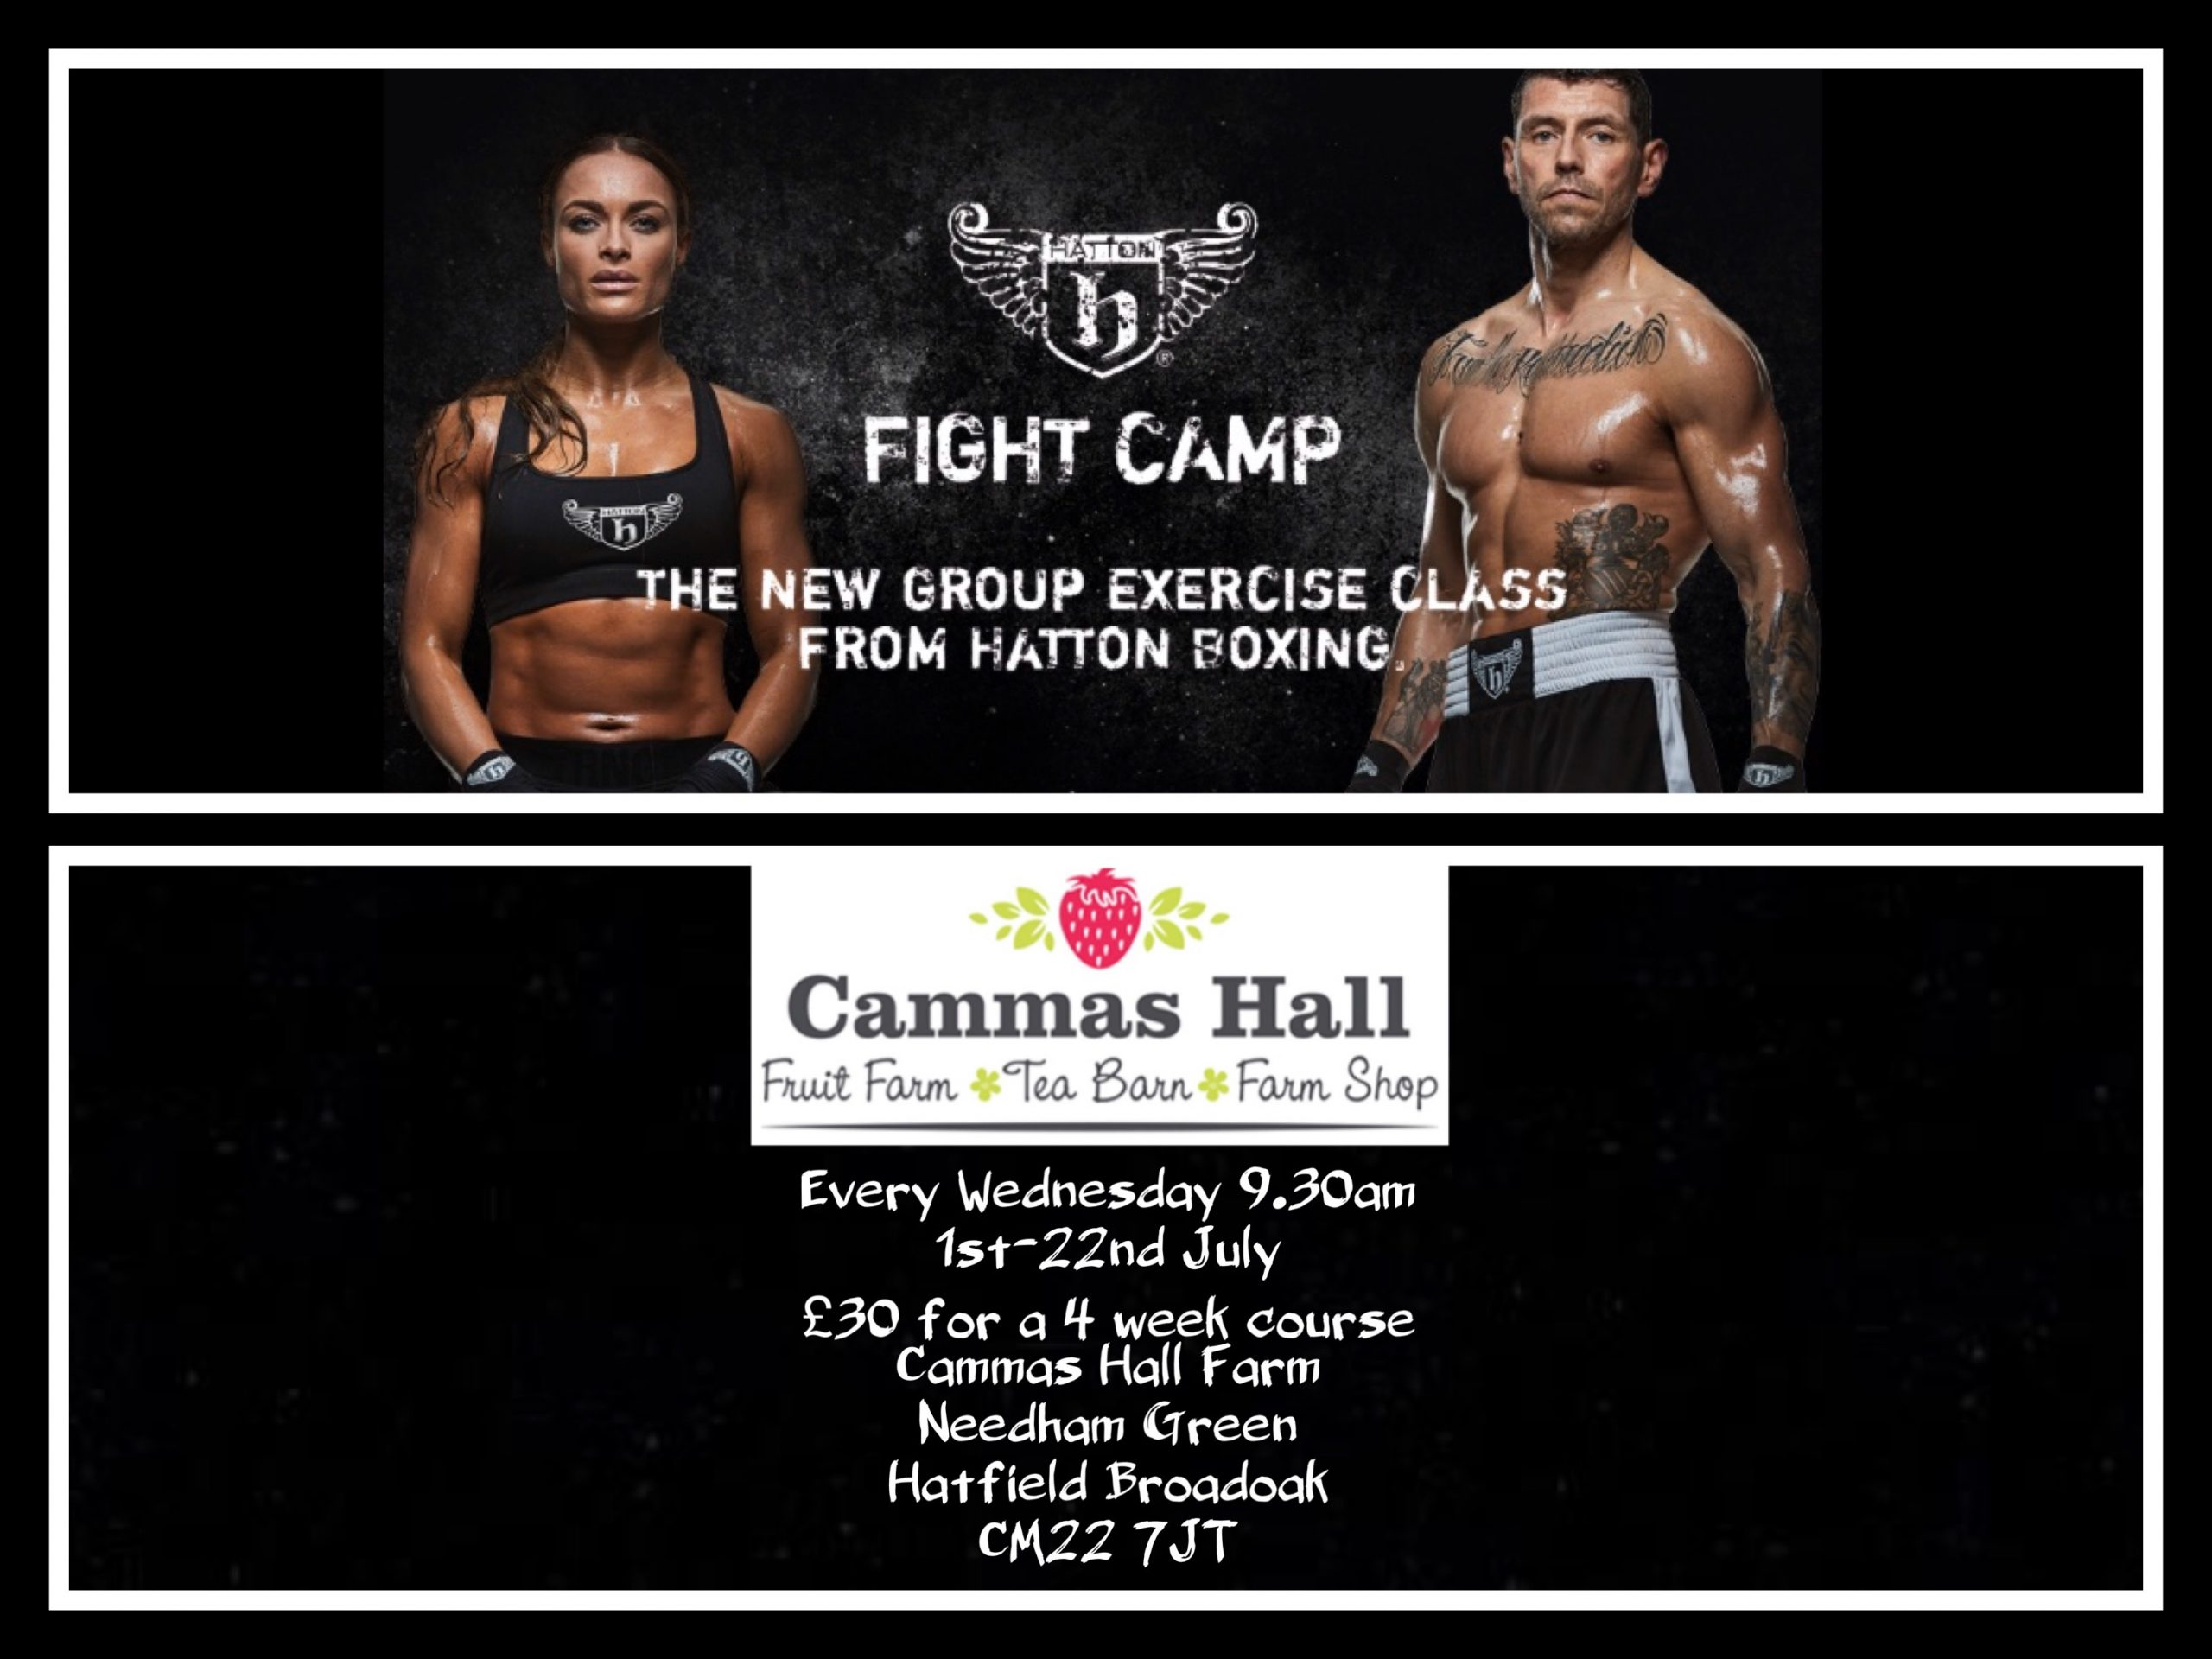 Fight Camp - Hatton Boxing Fitness Class